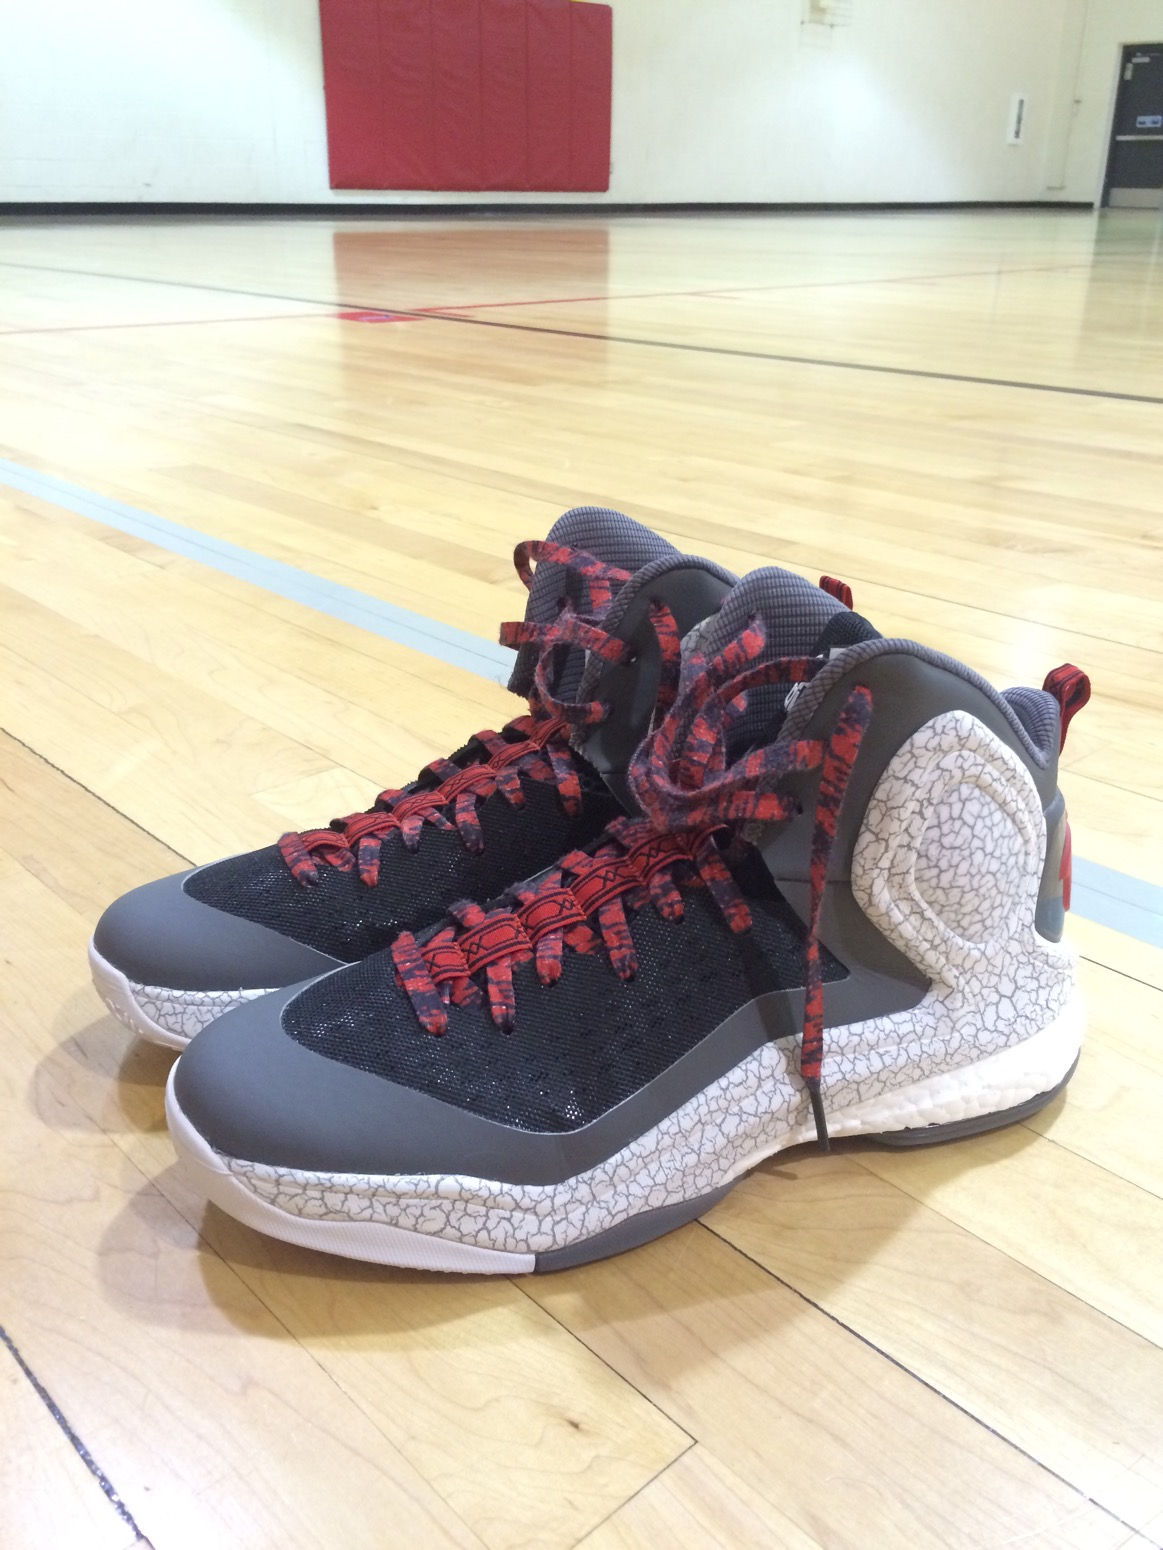 2adidas d rose 5 boost away